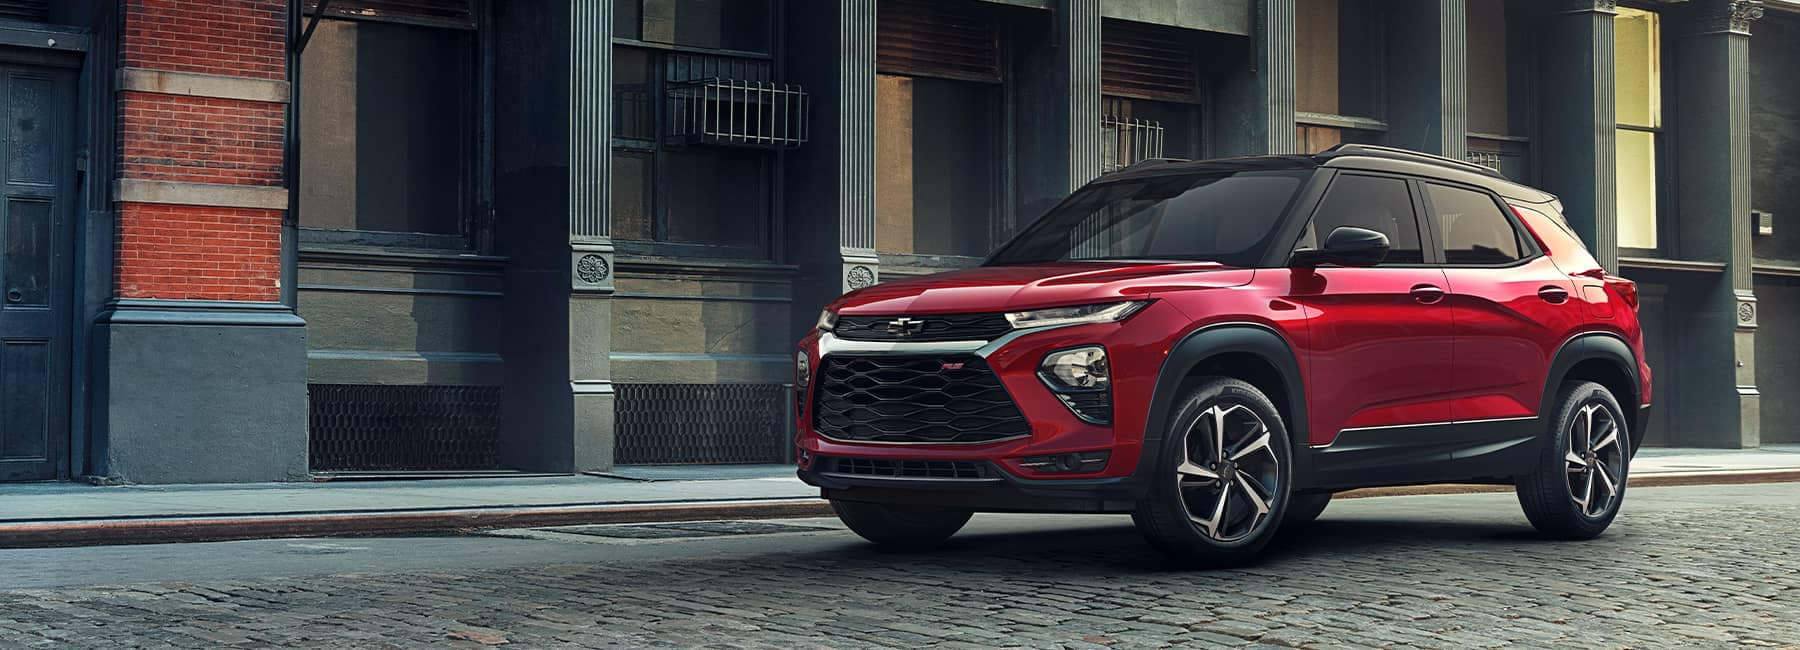 2021 Chevrolet Trailblazer parked in front of a city building